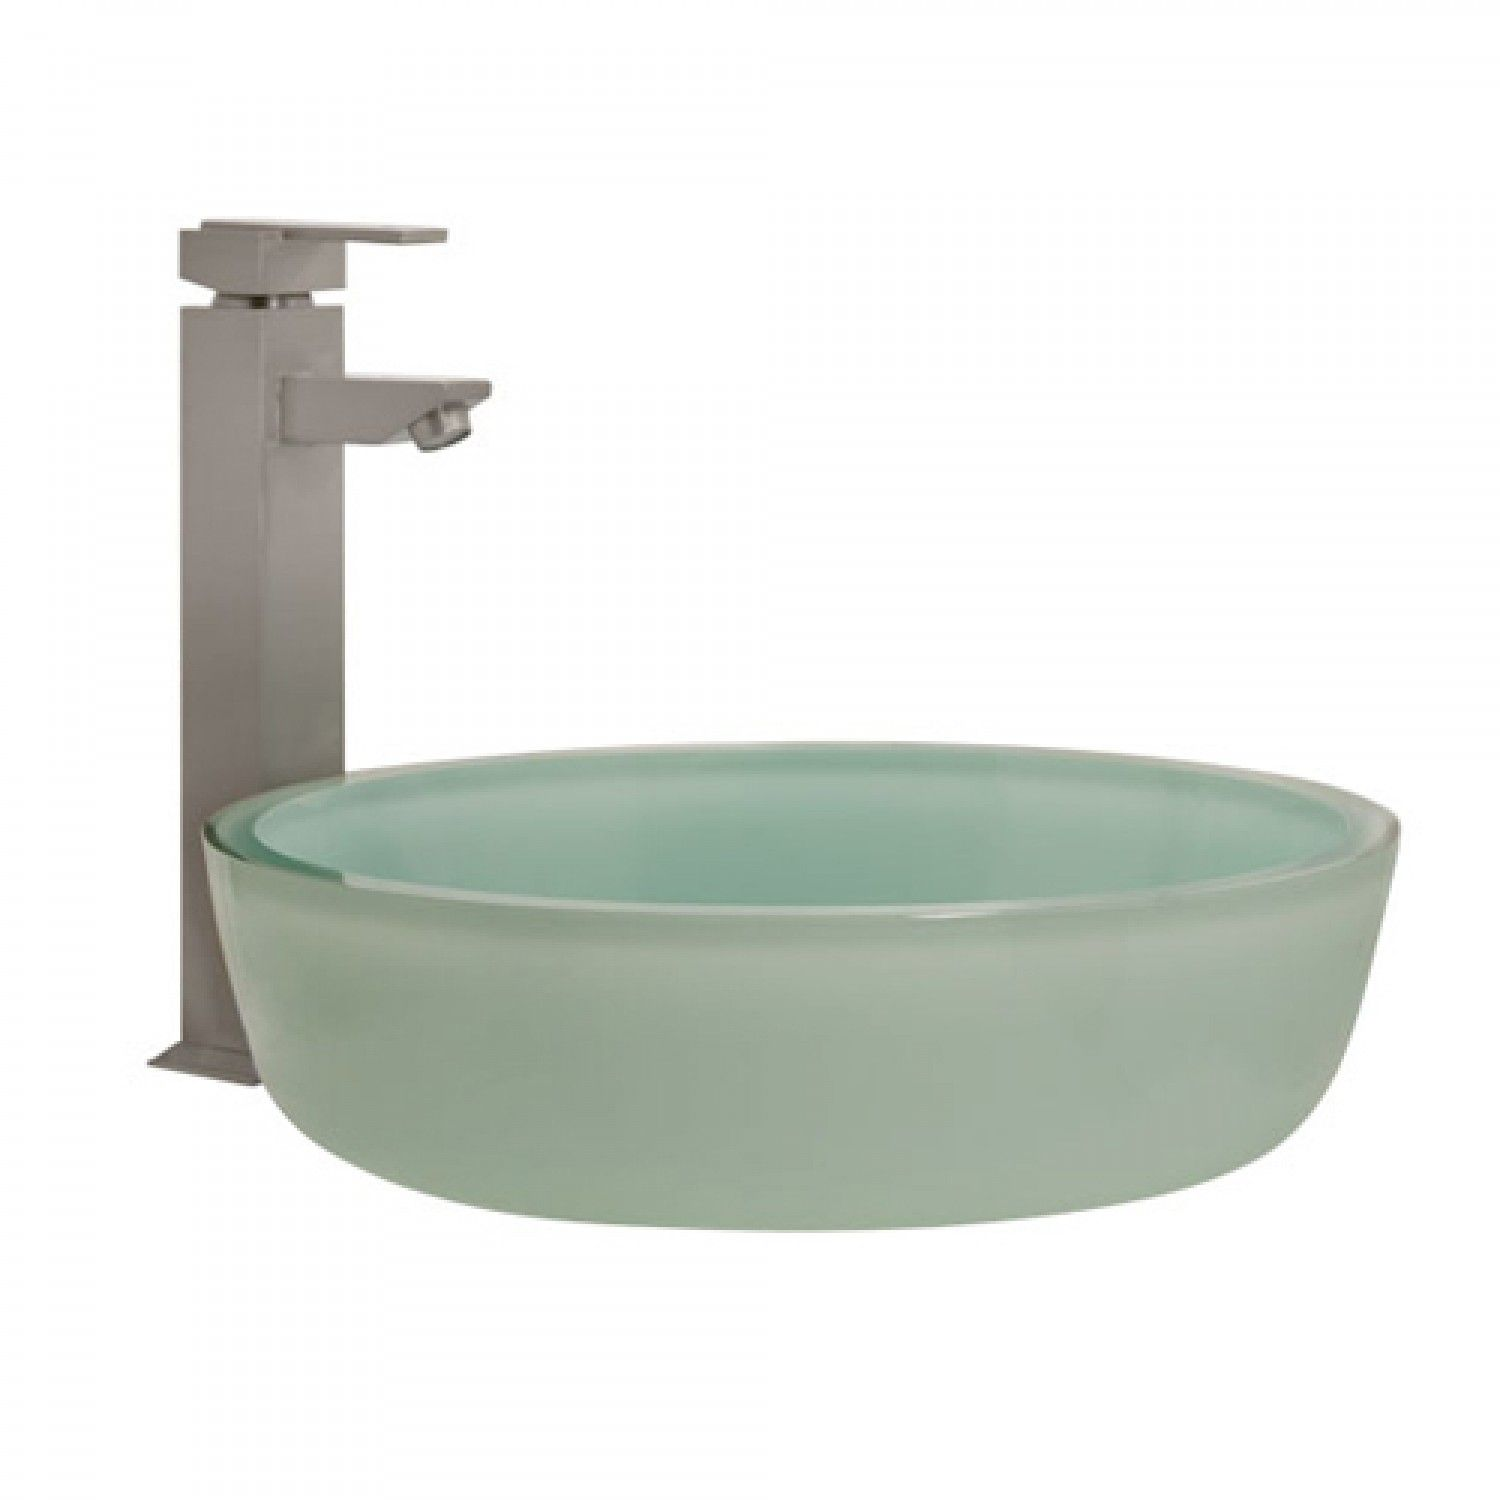 Glass Sink Bathroom Tea Green Glass Flat Bottom Vessel Sink Bathroom Sinks